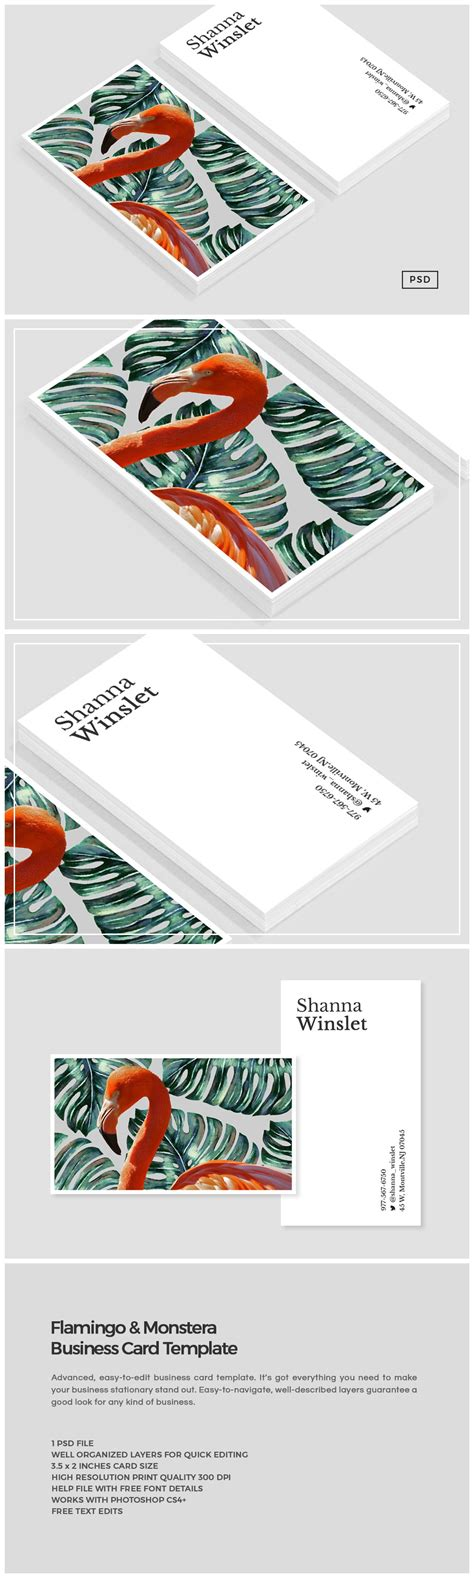 o card template flamingo monstera business card business card